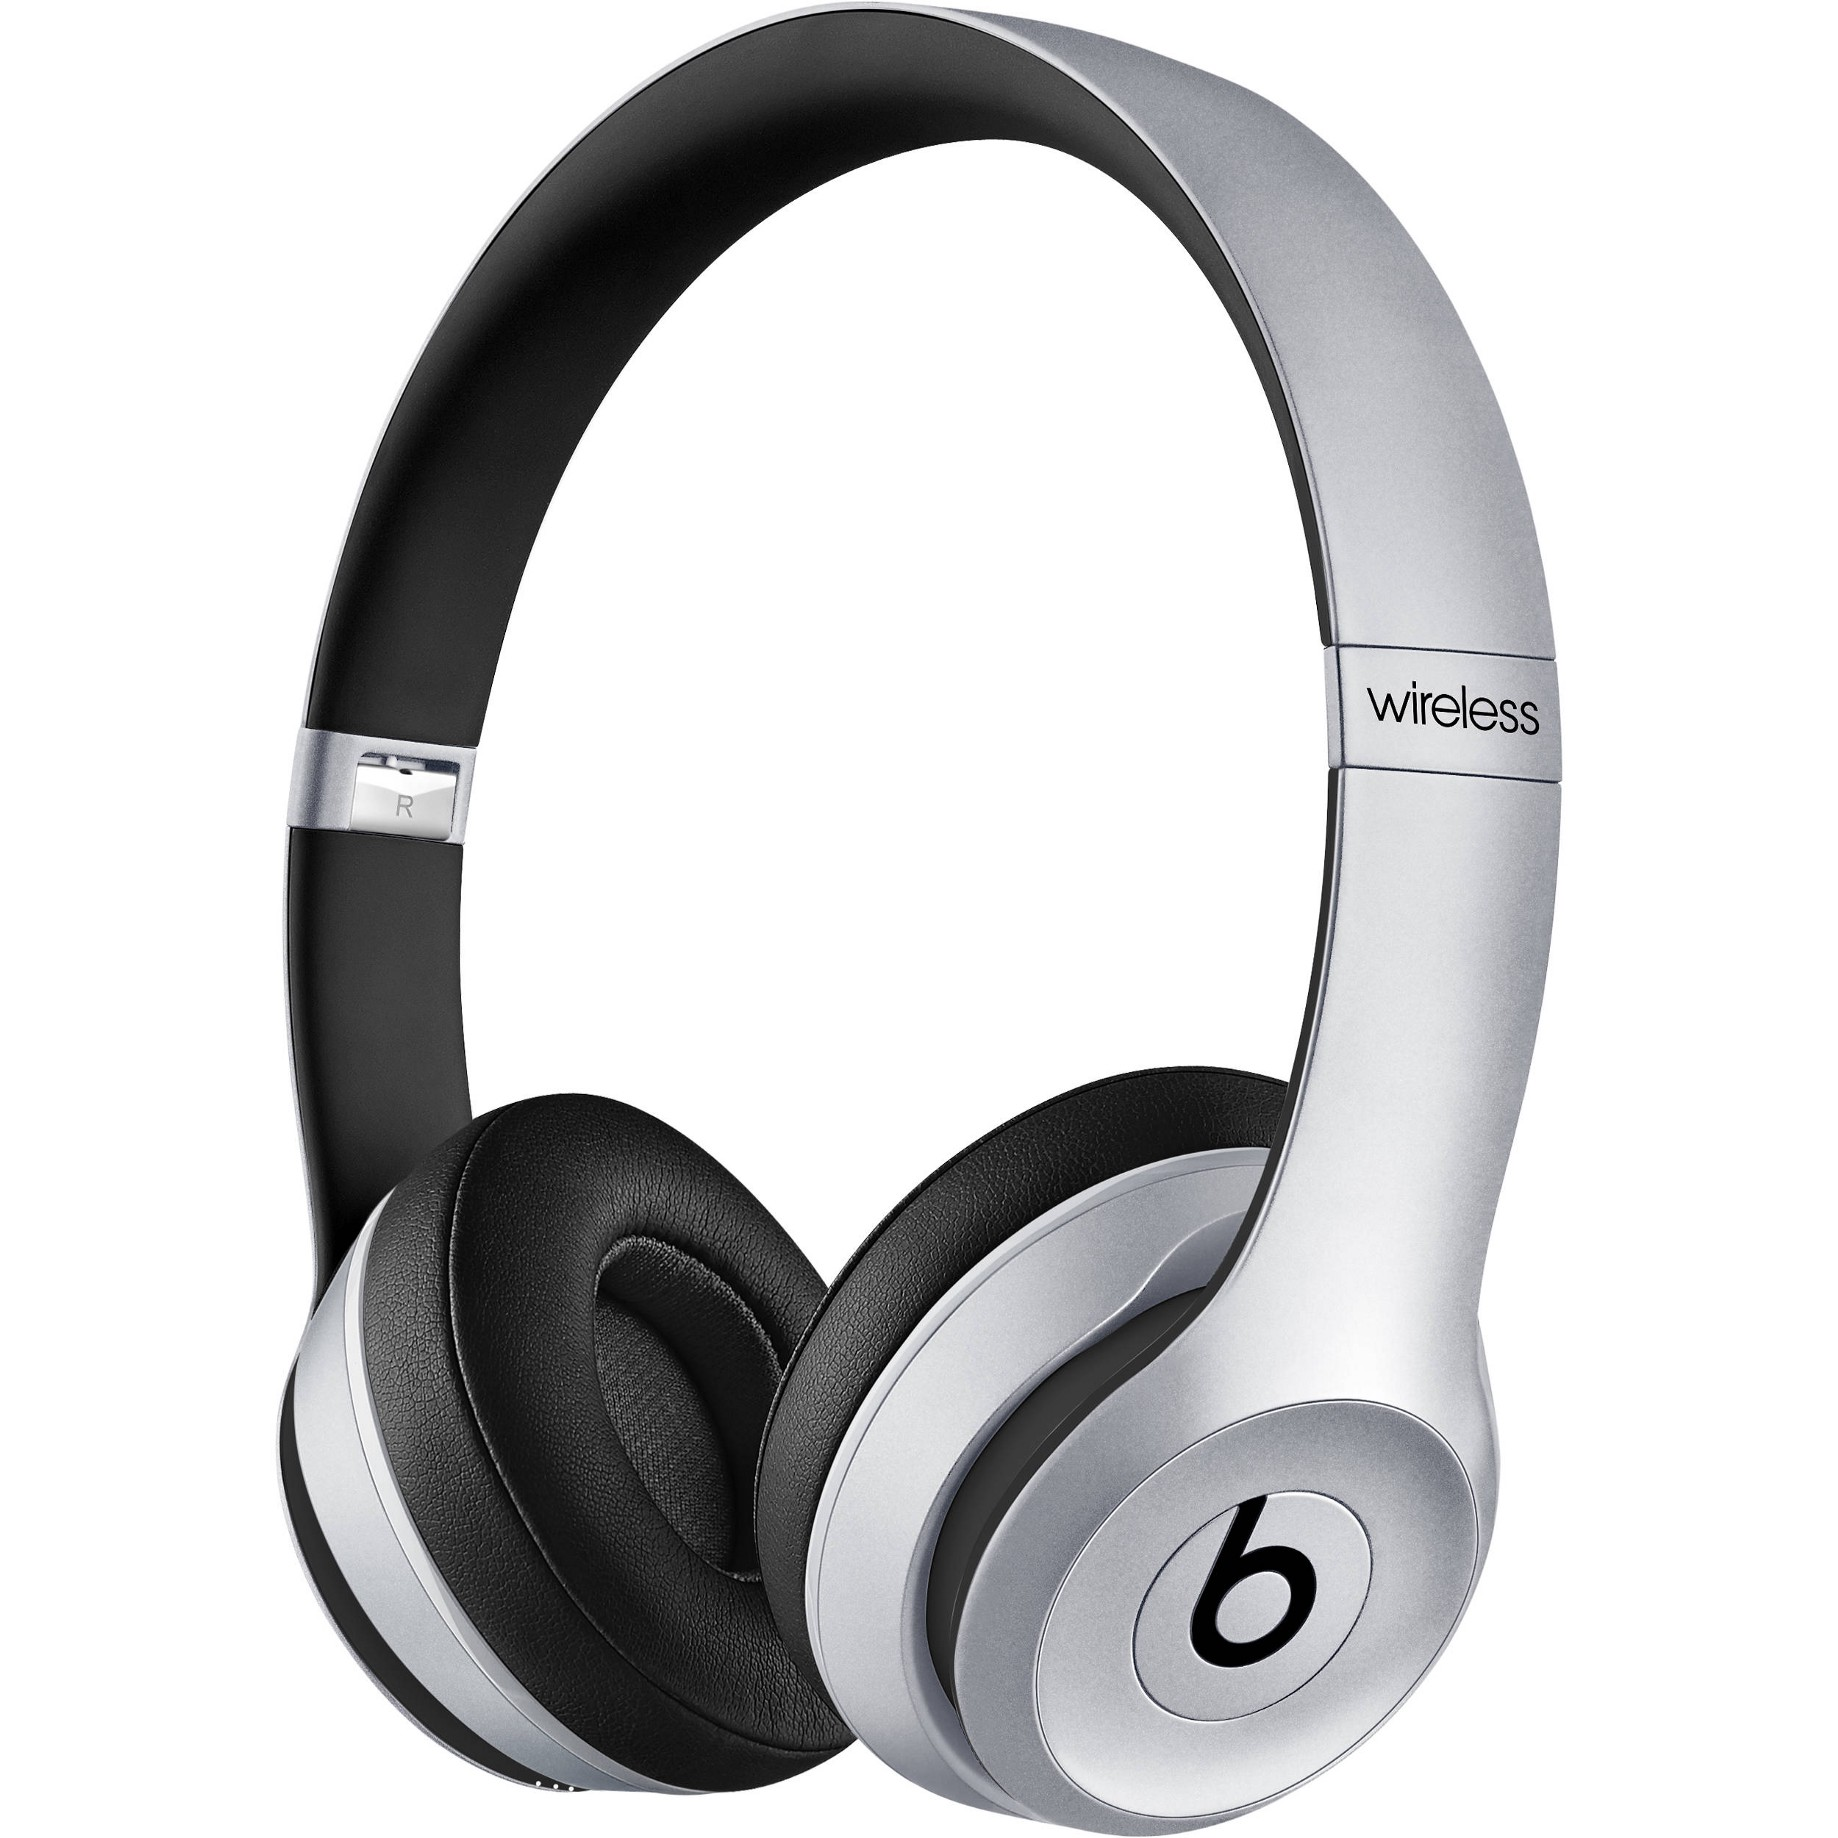 17add9468d9 Beats Solo 2 Wireless Review: Don't Buy them At Full Price